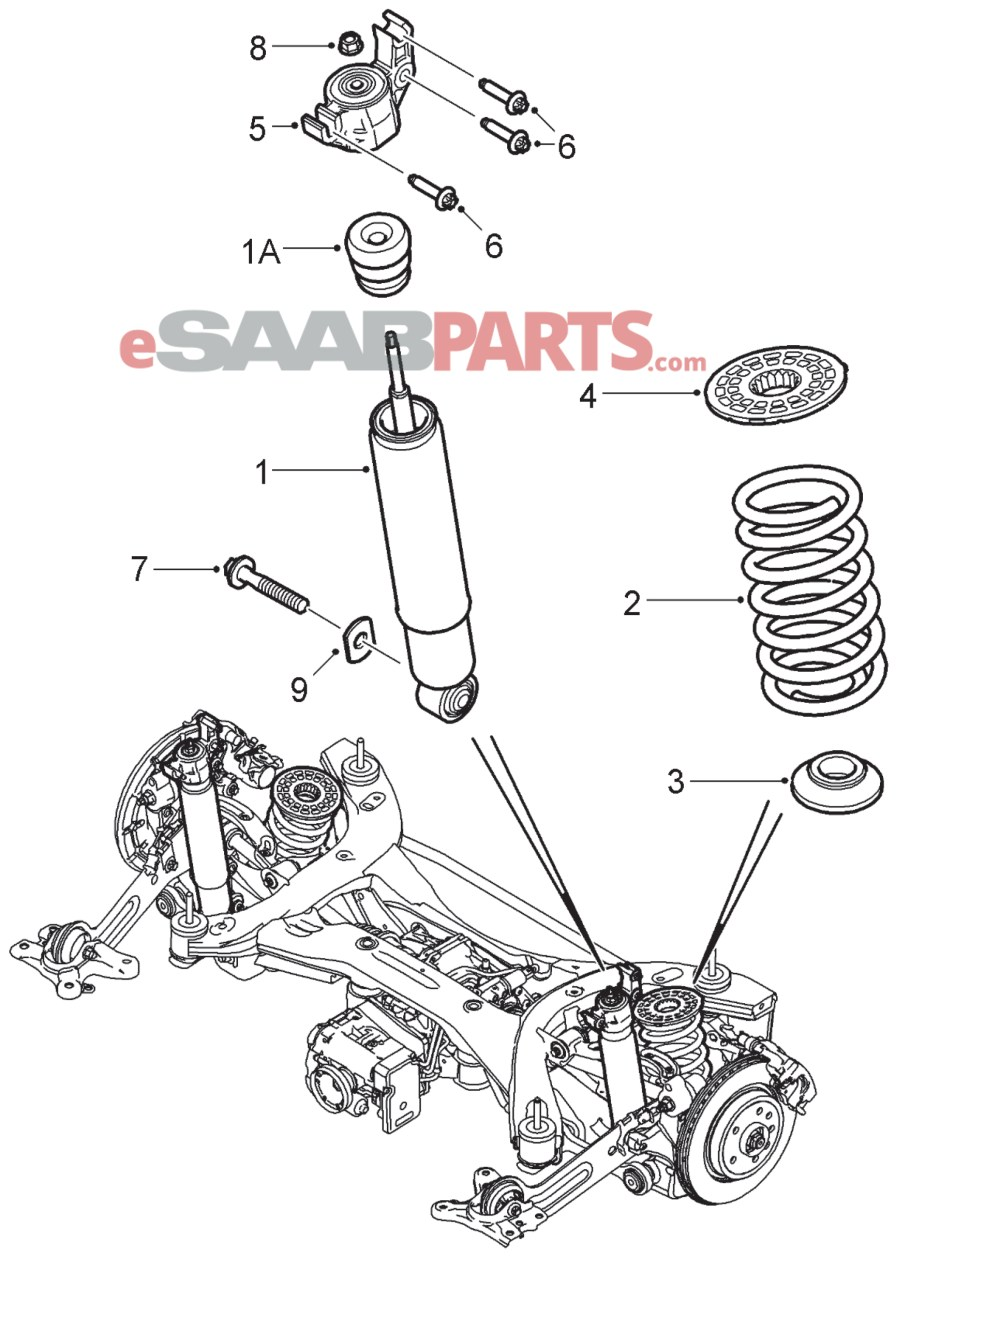 medium resolution of esaabparts com saab 9 3 9440 suspension wheels parts rear suspension rear suspension xwd